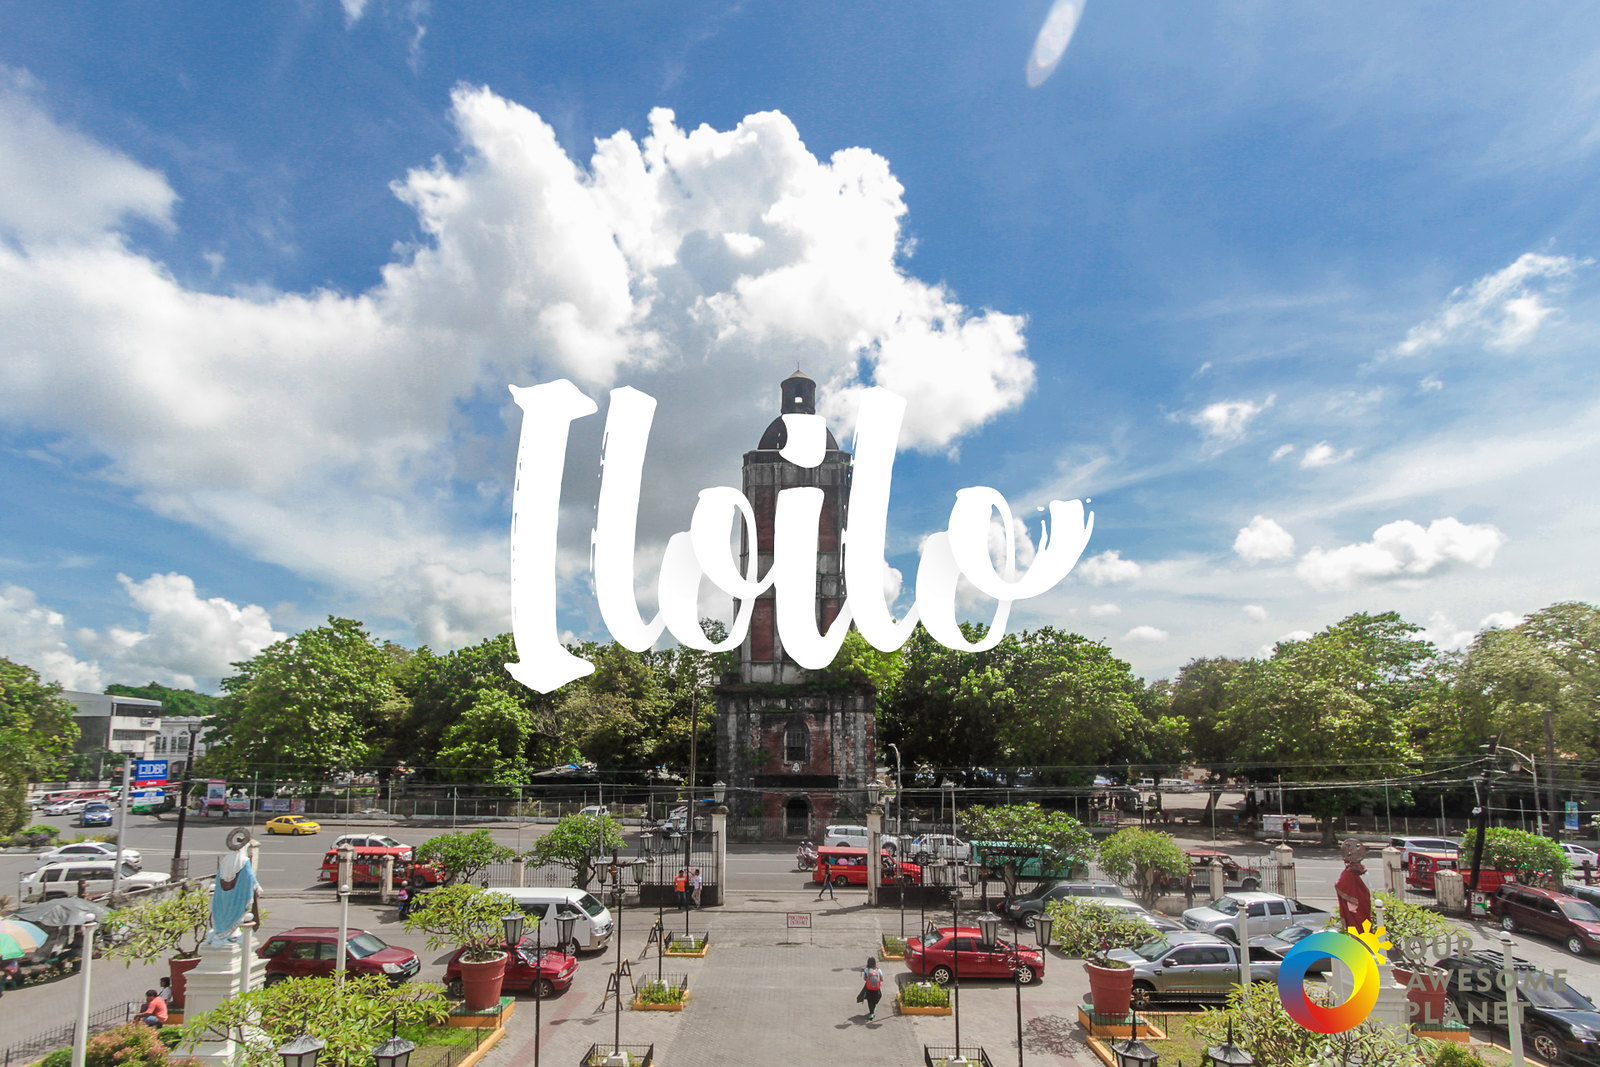 ILOILO HERITAGE: Must Visit Churches and Heritage Houses in Iloilo!